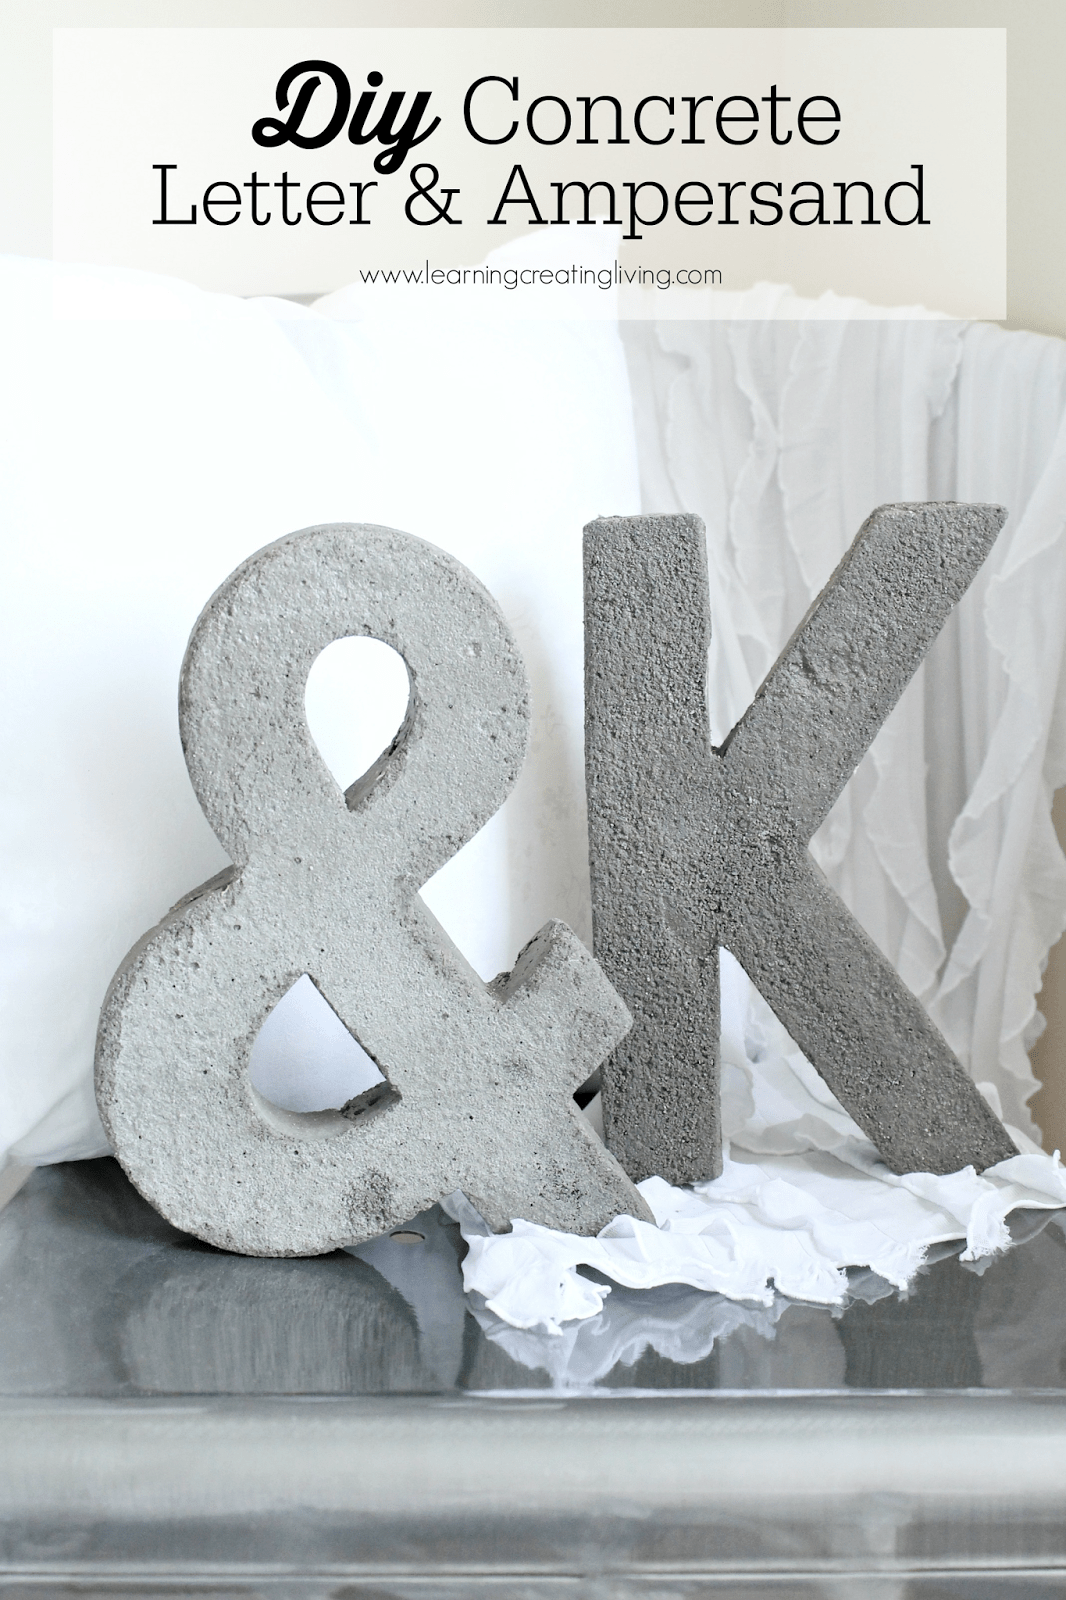 DIY concrete letter and ampersand